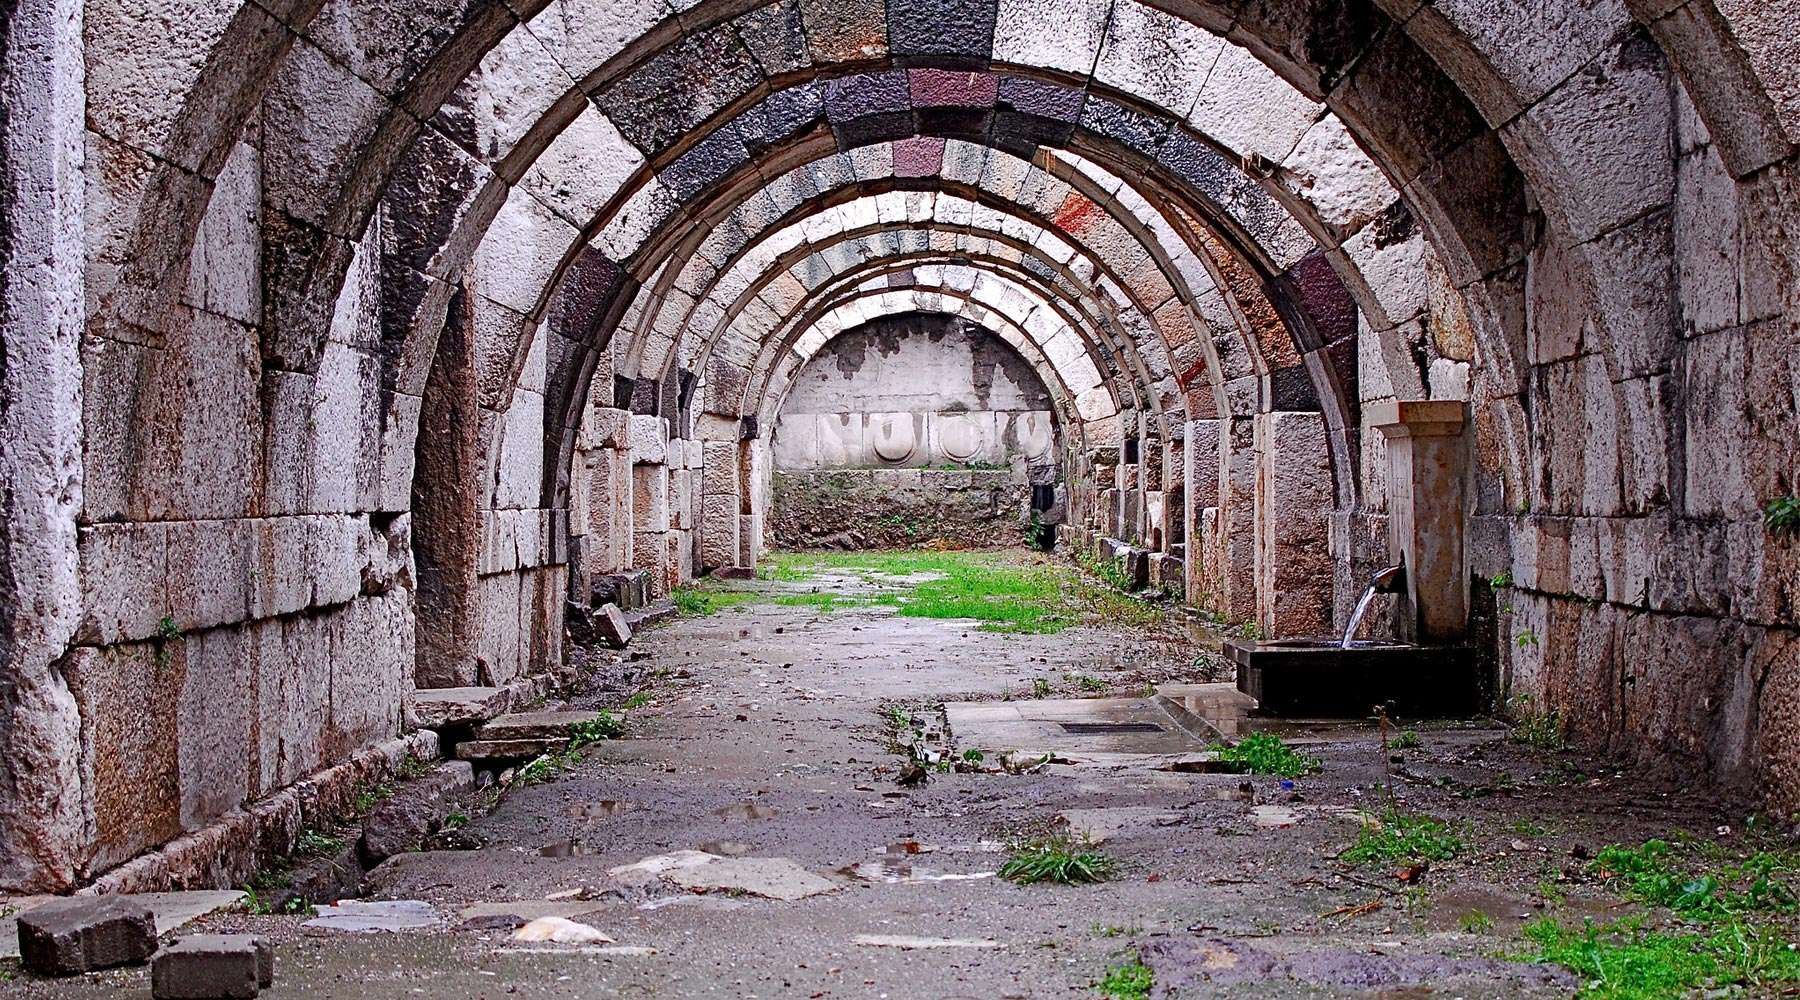 Agora of Smyrna – An Ancient Roman Agora in Izmir, Turkey